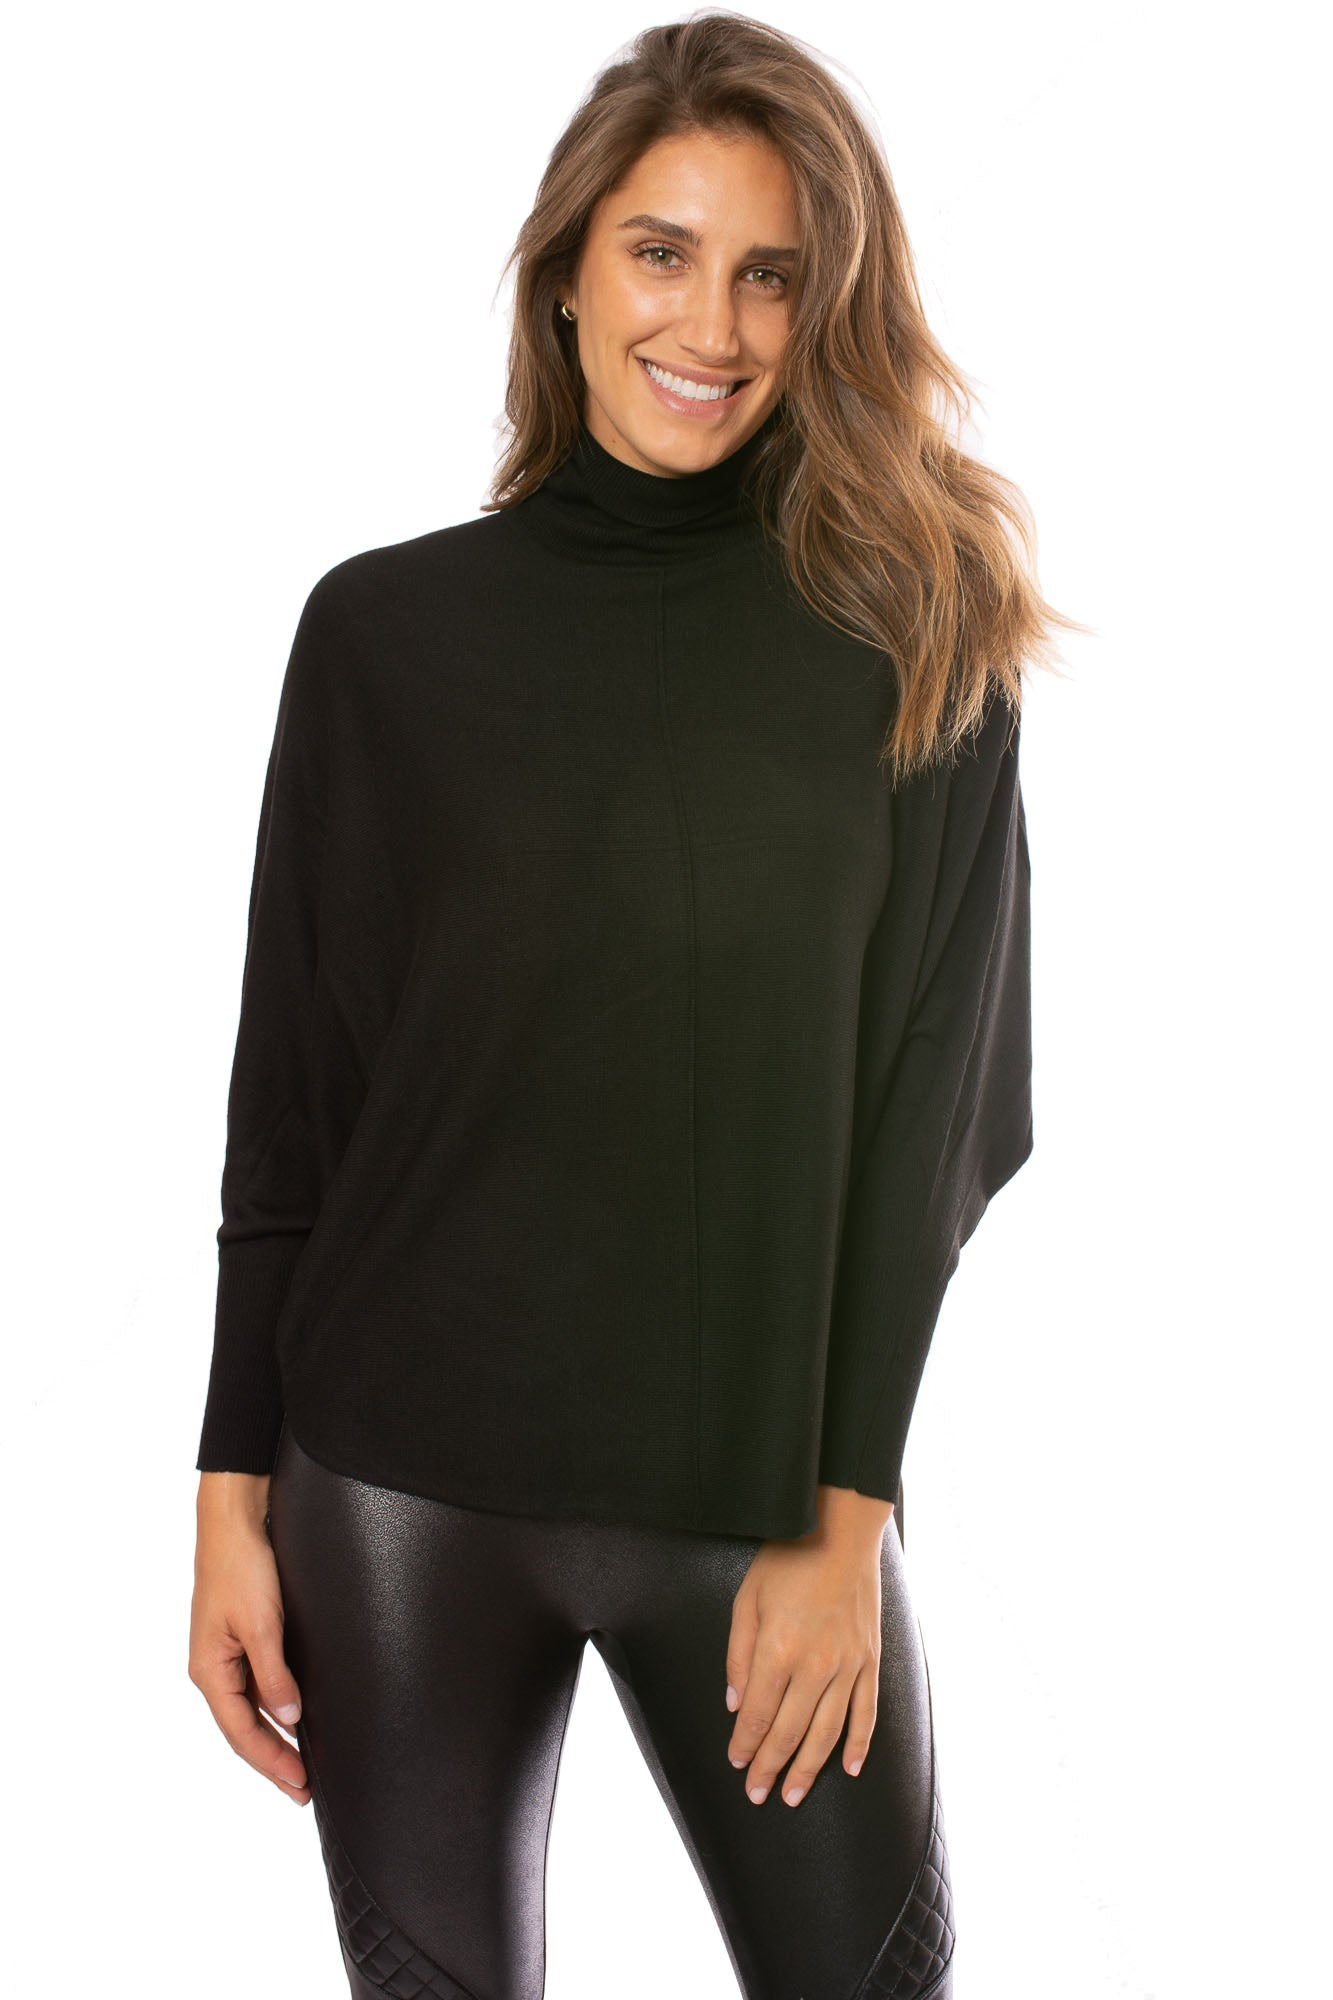 Kerisma - Black Cashmere Turtle Neck Sweater (G550G, Black)